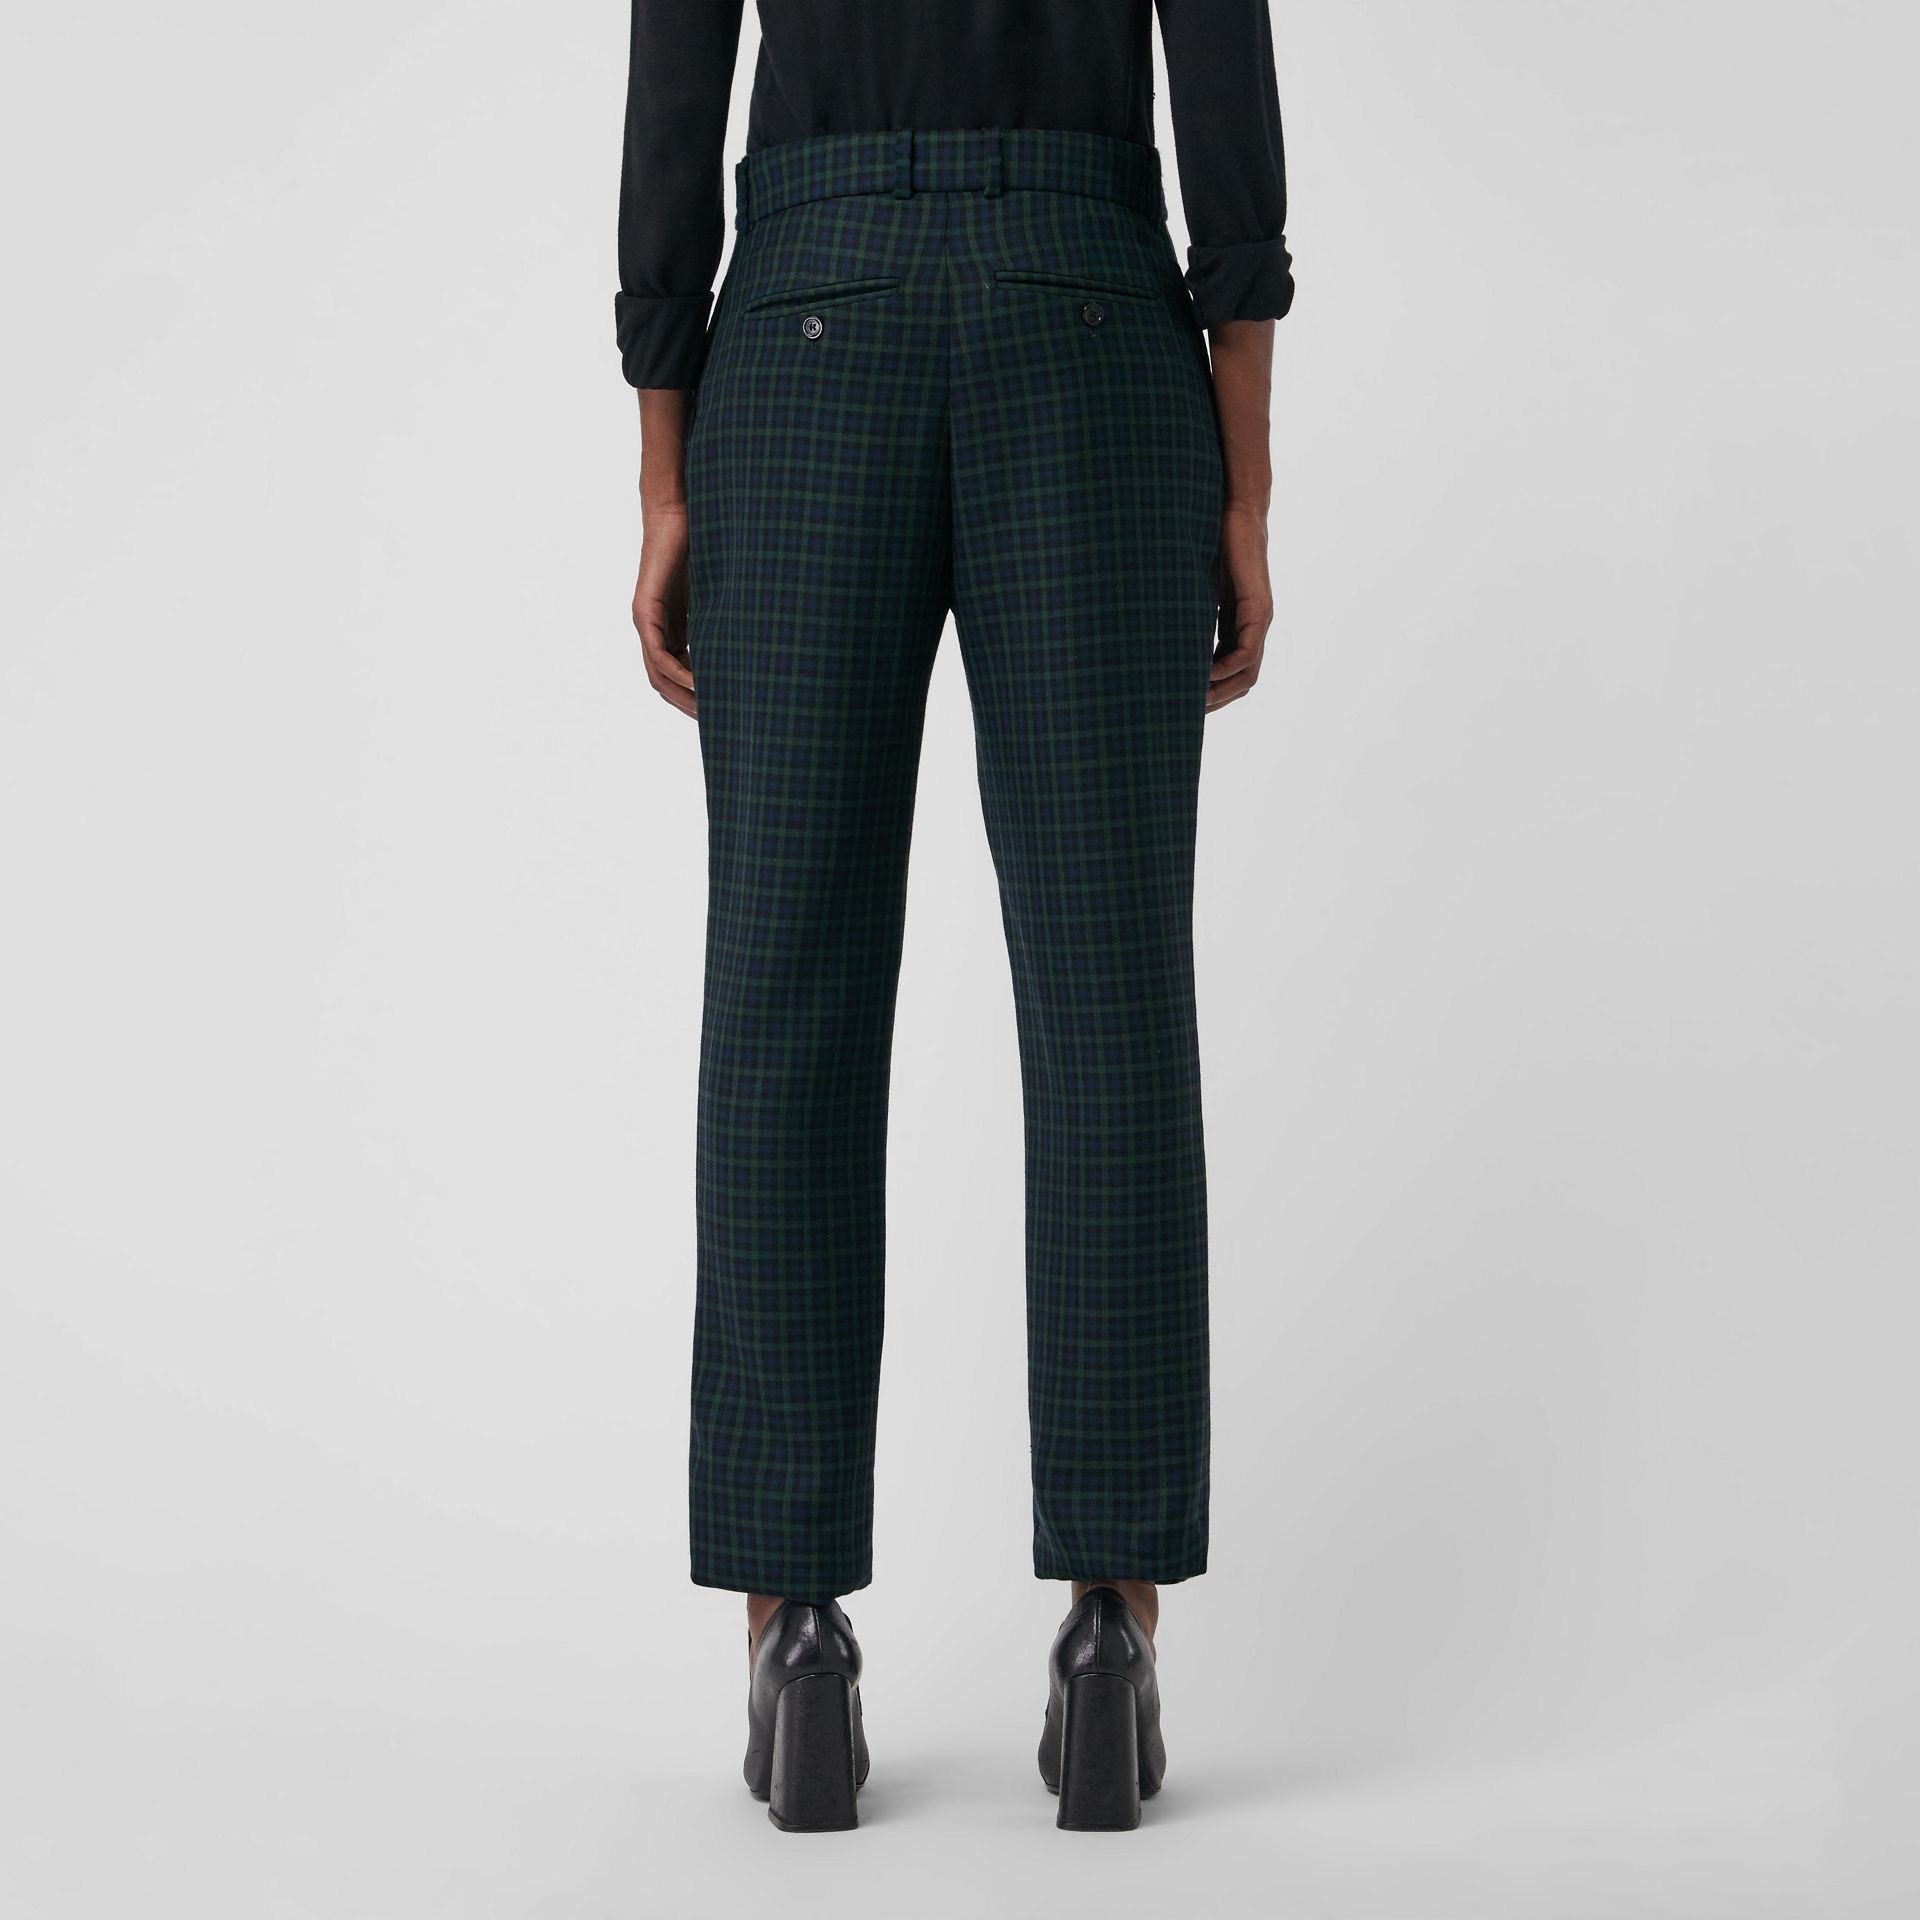 Straight Fit Check Wool Blend Tailored Trousers in Navy - Women | Burberry - gallery image 2